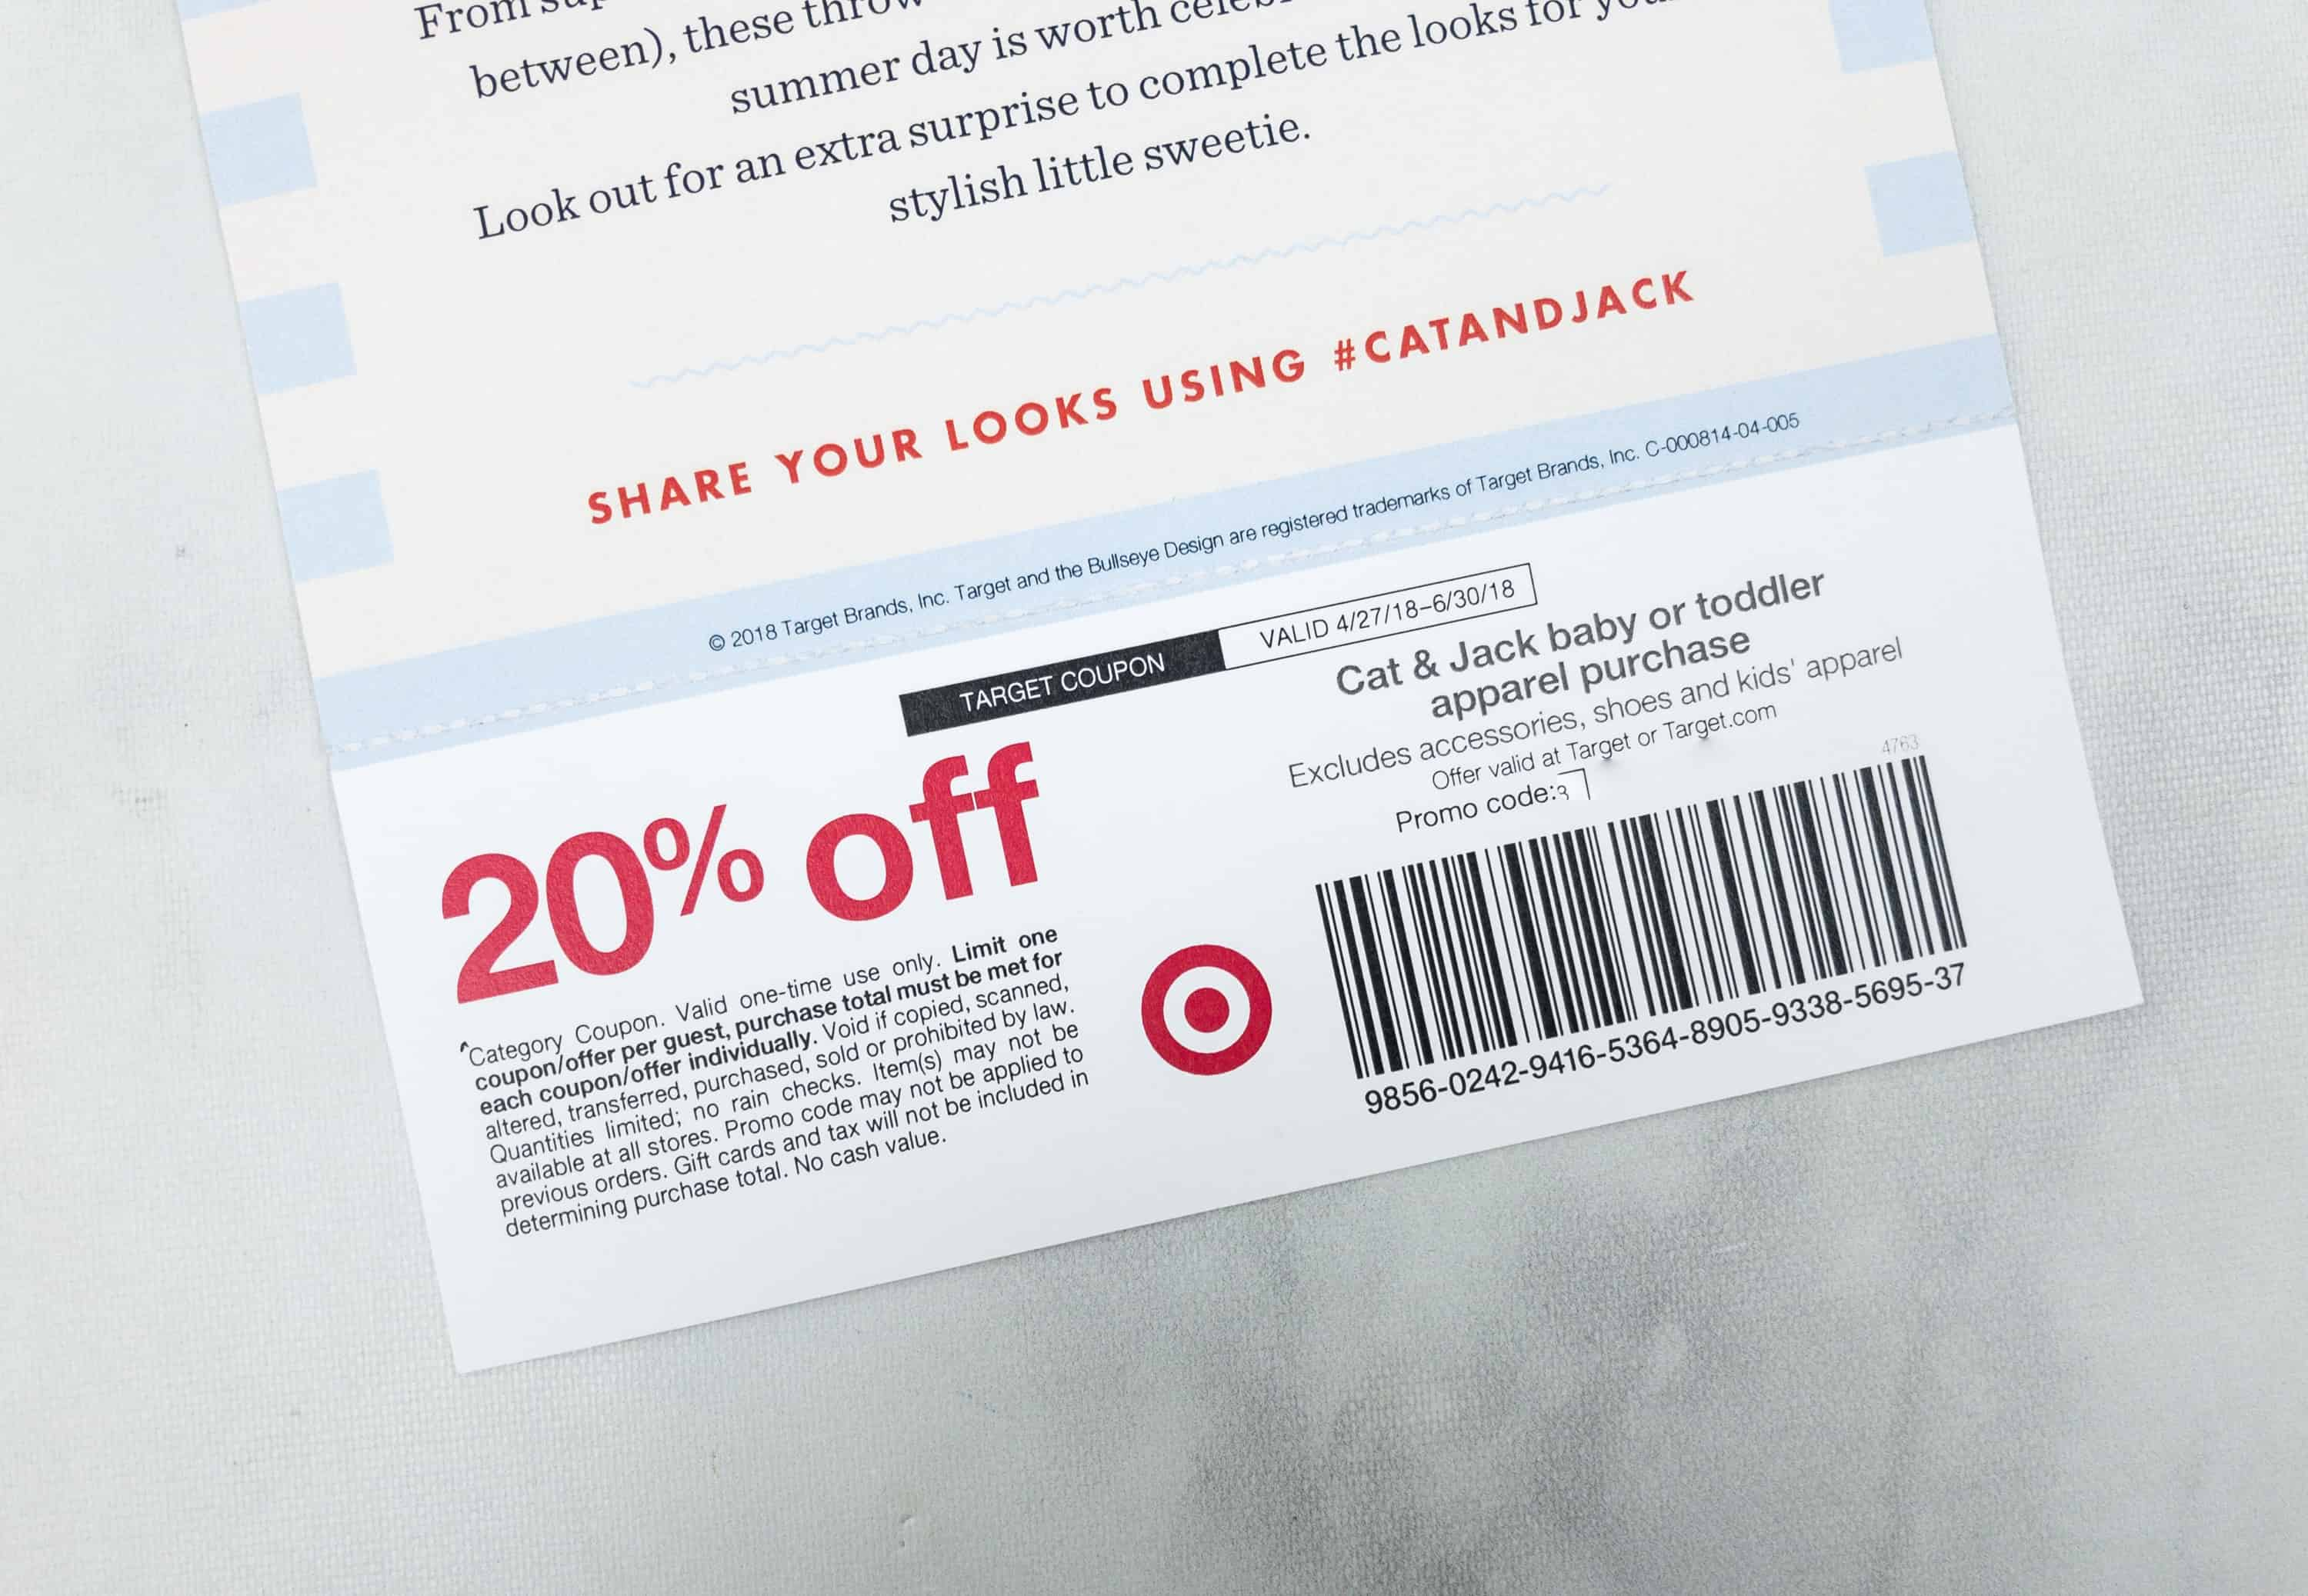 14c156e72 As a bonus, attached to the card is a coupon for 20% off on all Cat & Jack  baby or toddler apparel purchases. My baby needs even more clothes, ...